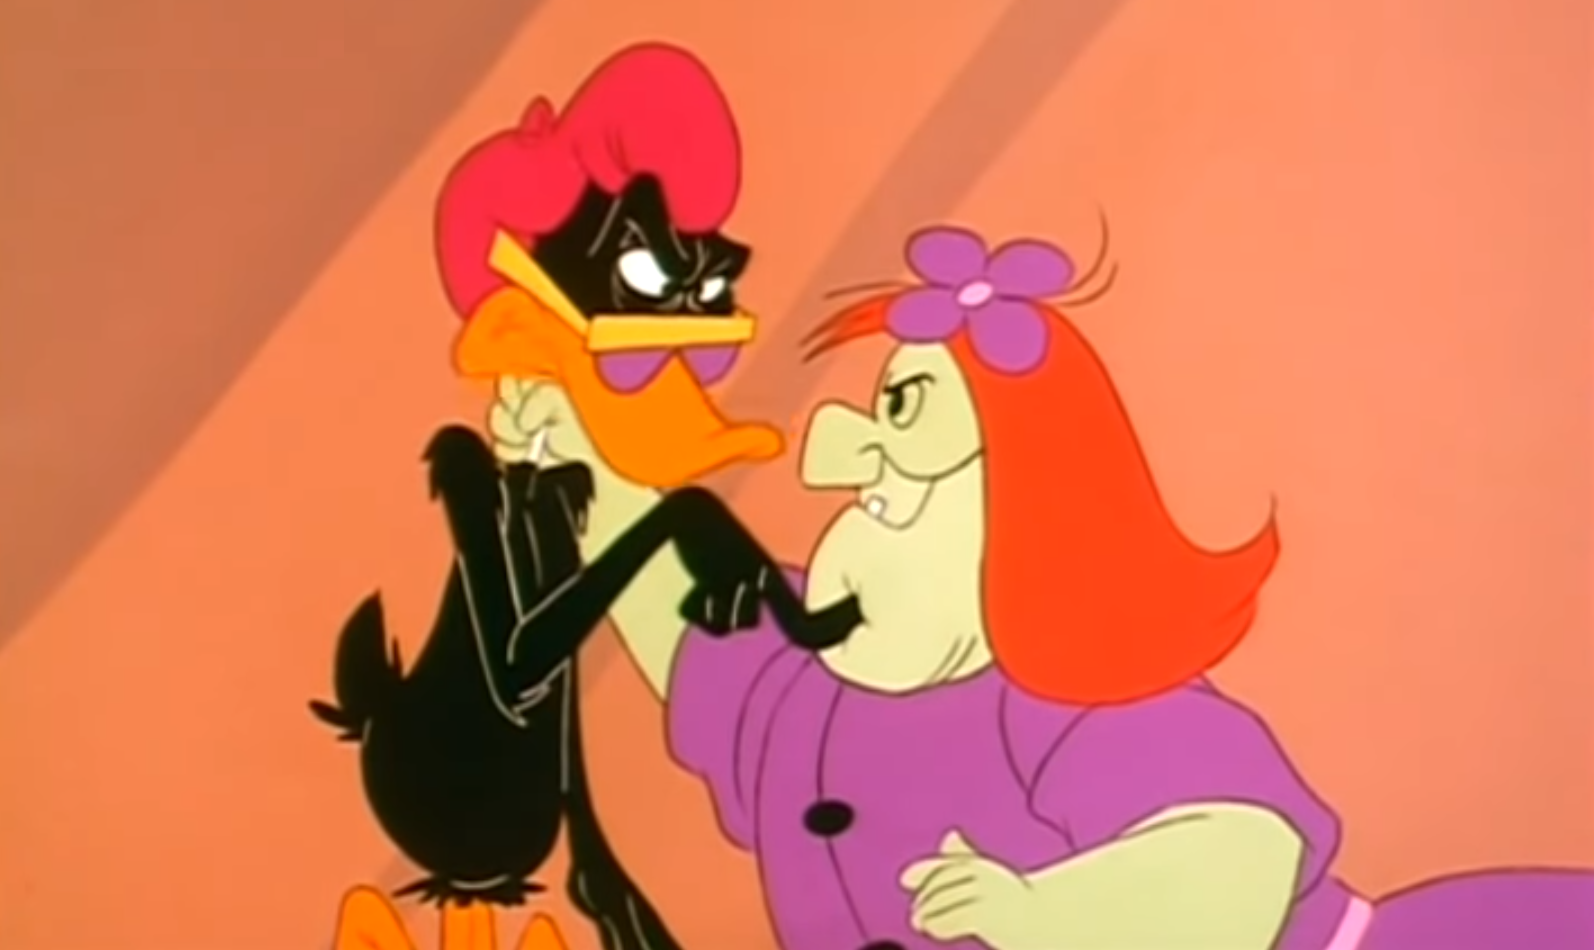 Daffy Duck and Hagatha Groovie Goolies